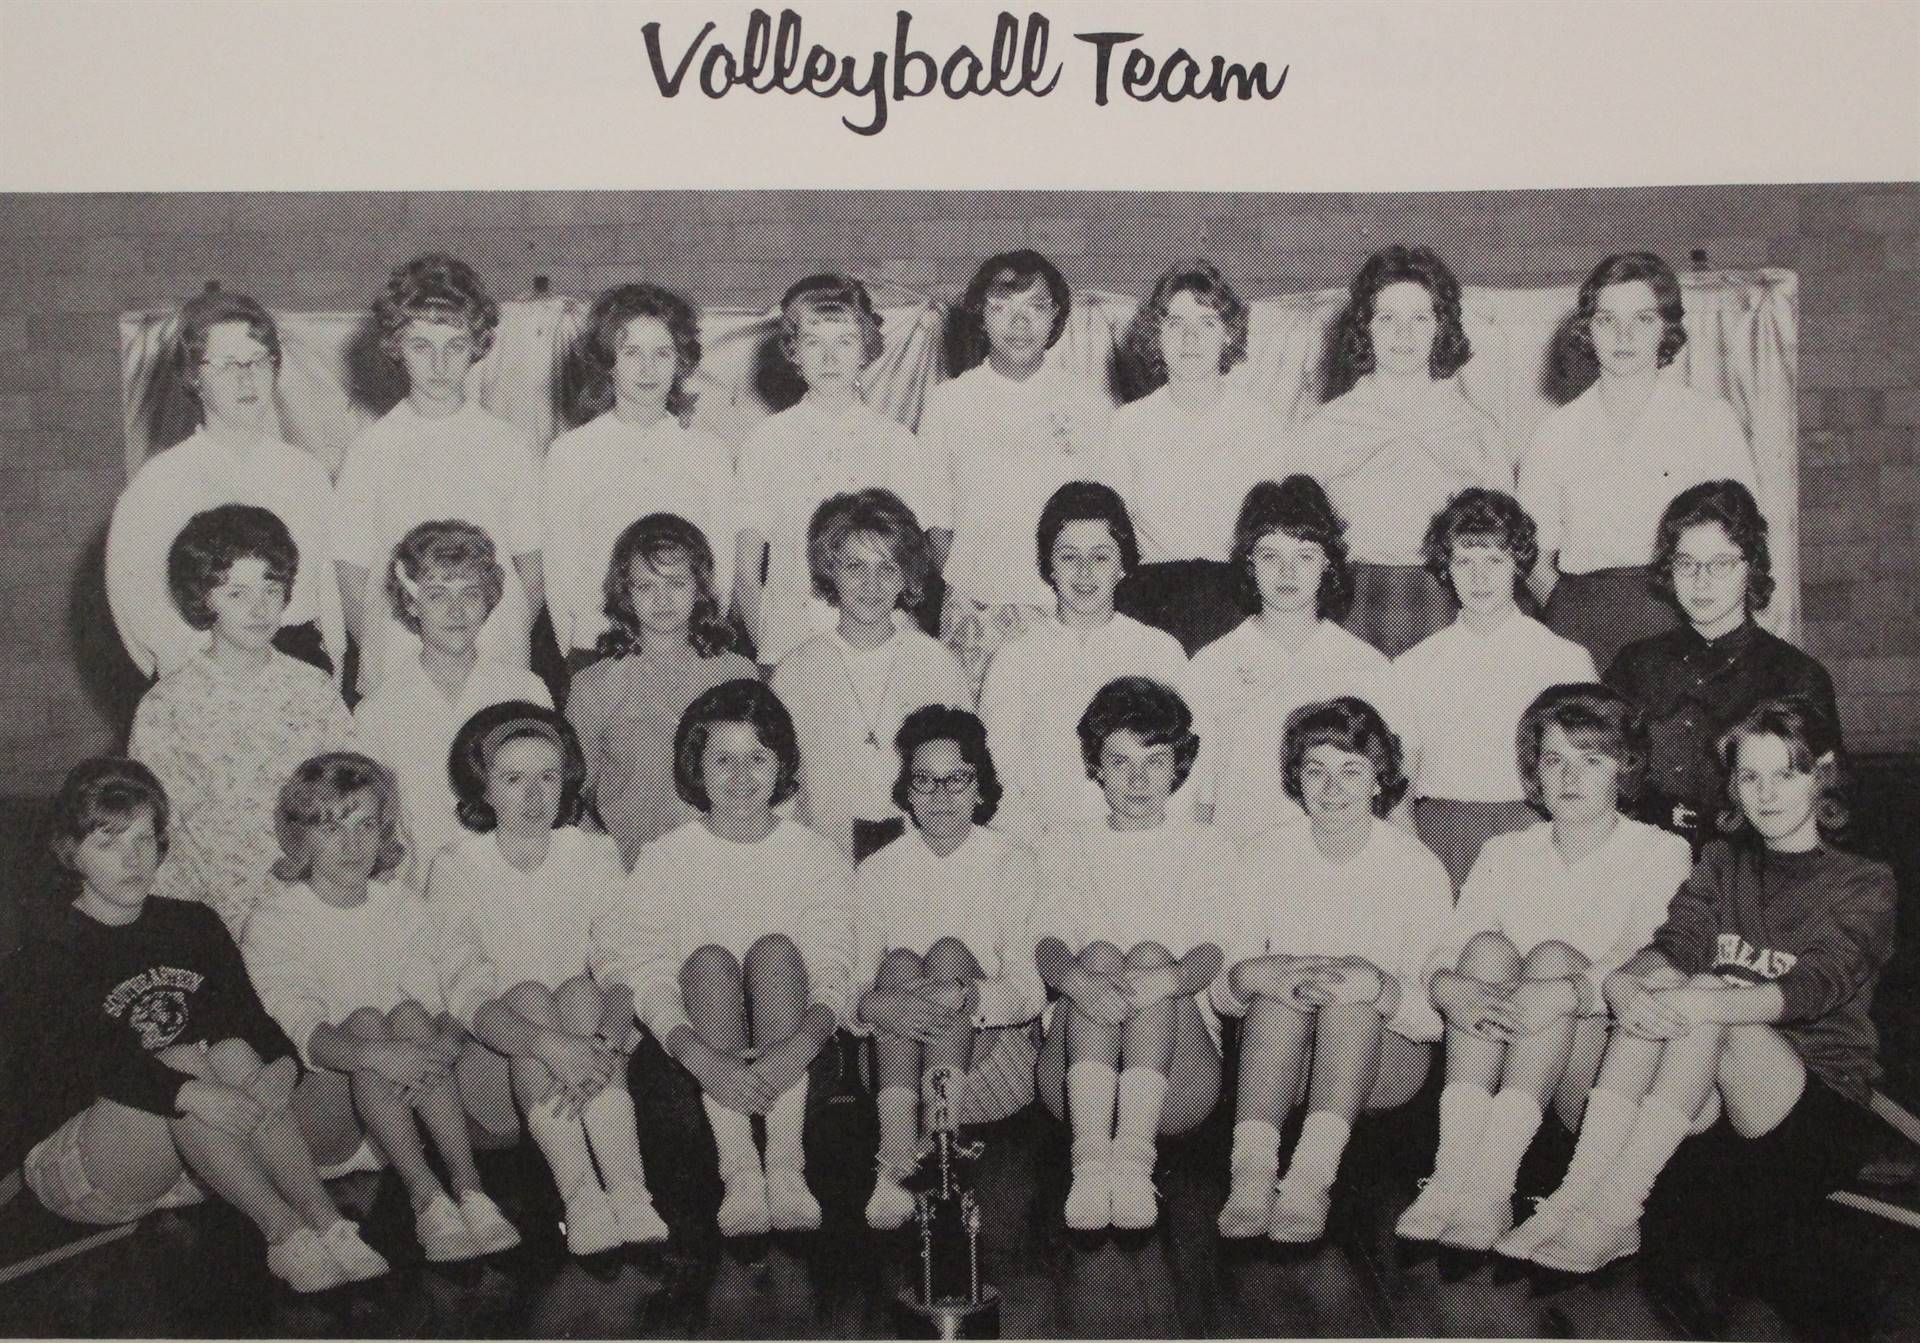 1964 Volleyball Team